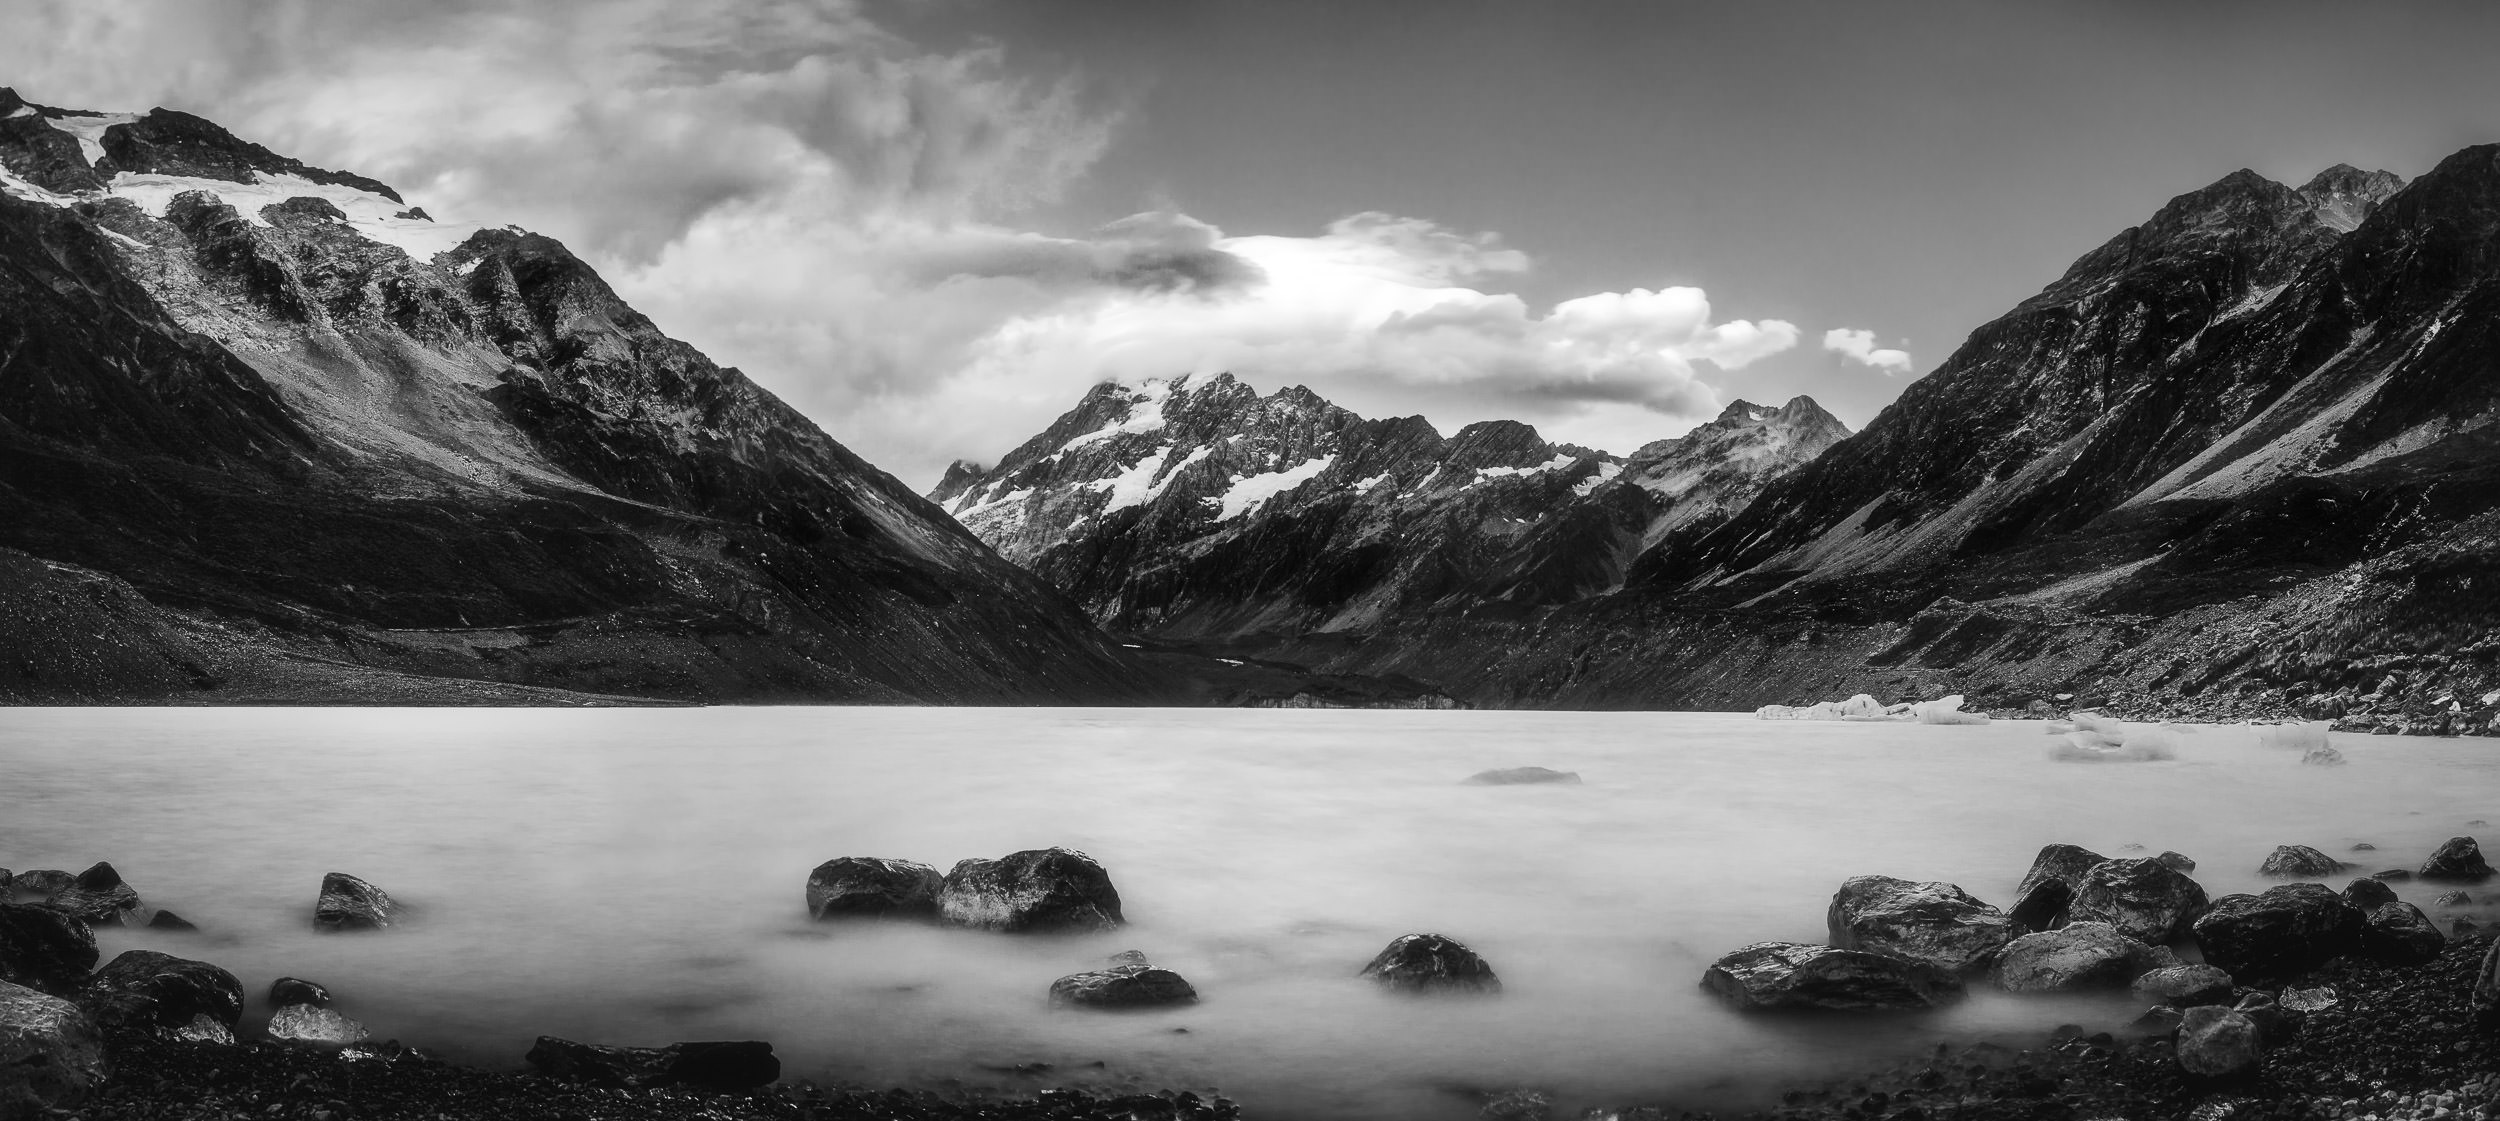 2018.03.12_NZ_Hooker_Lake-0212-Pano-1 copy-1.jpg